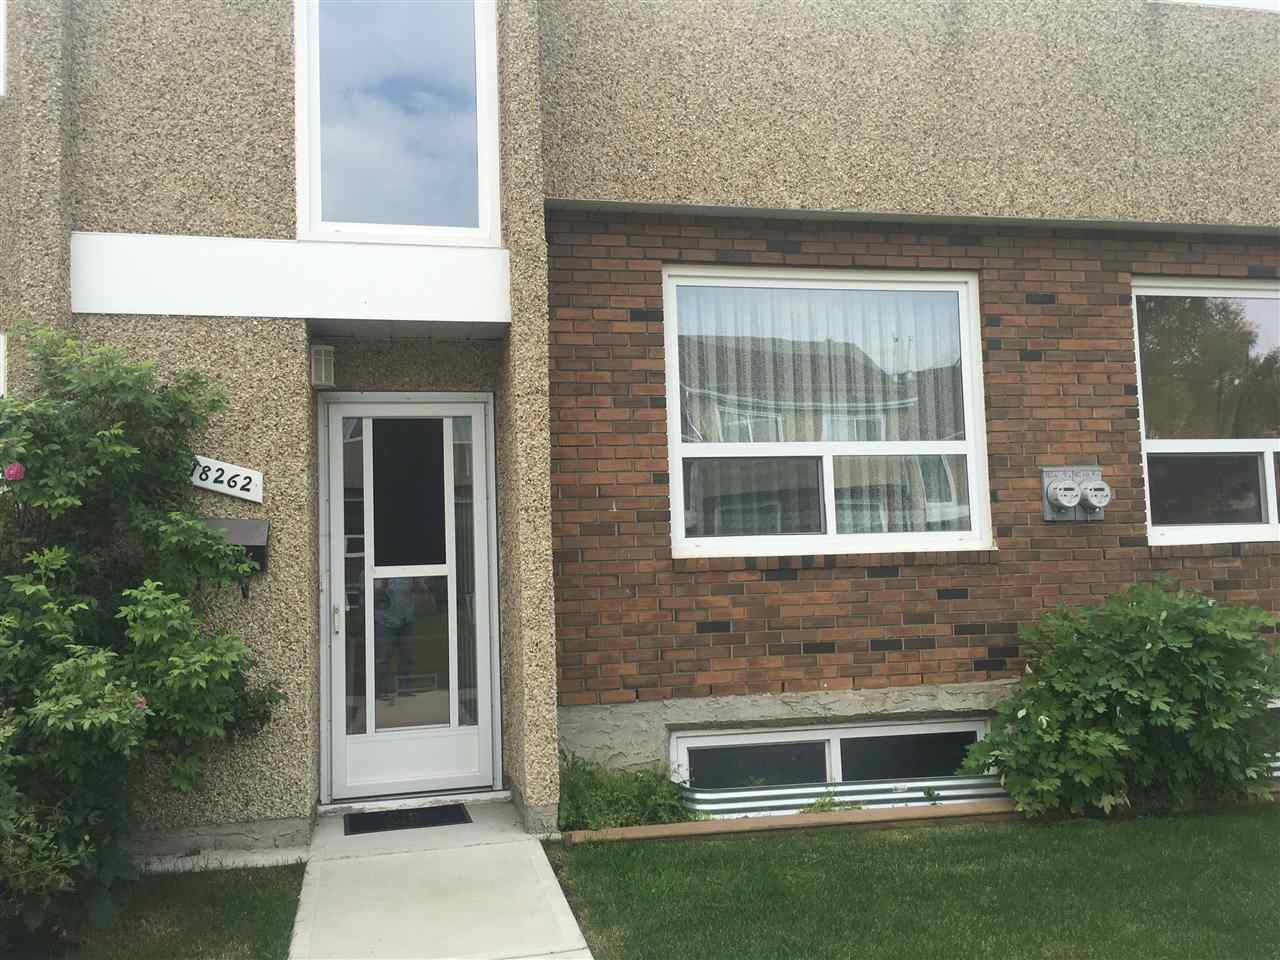 This lovingly renovated end unit is one of a kind with 4 bedrooms on the upper level, a large living room and additional family room on the main level! The master comes with a new 4 piece bath. All new flooring, base boards through out, new paint and new windows and doors. Short walk to WEM and surrounded by all levels of schools.